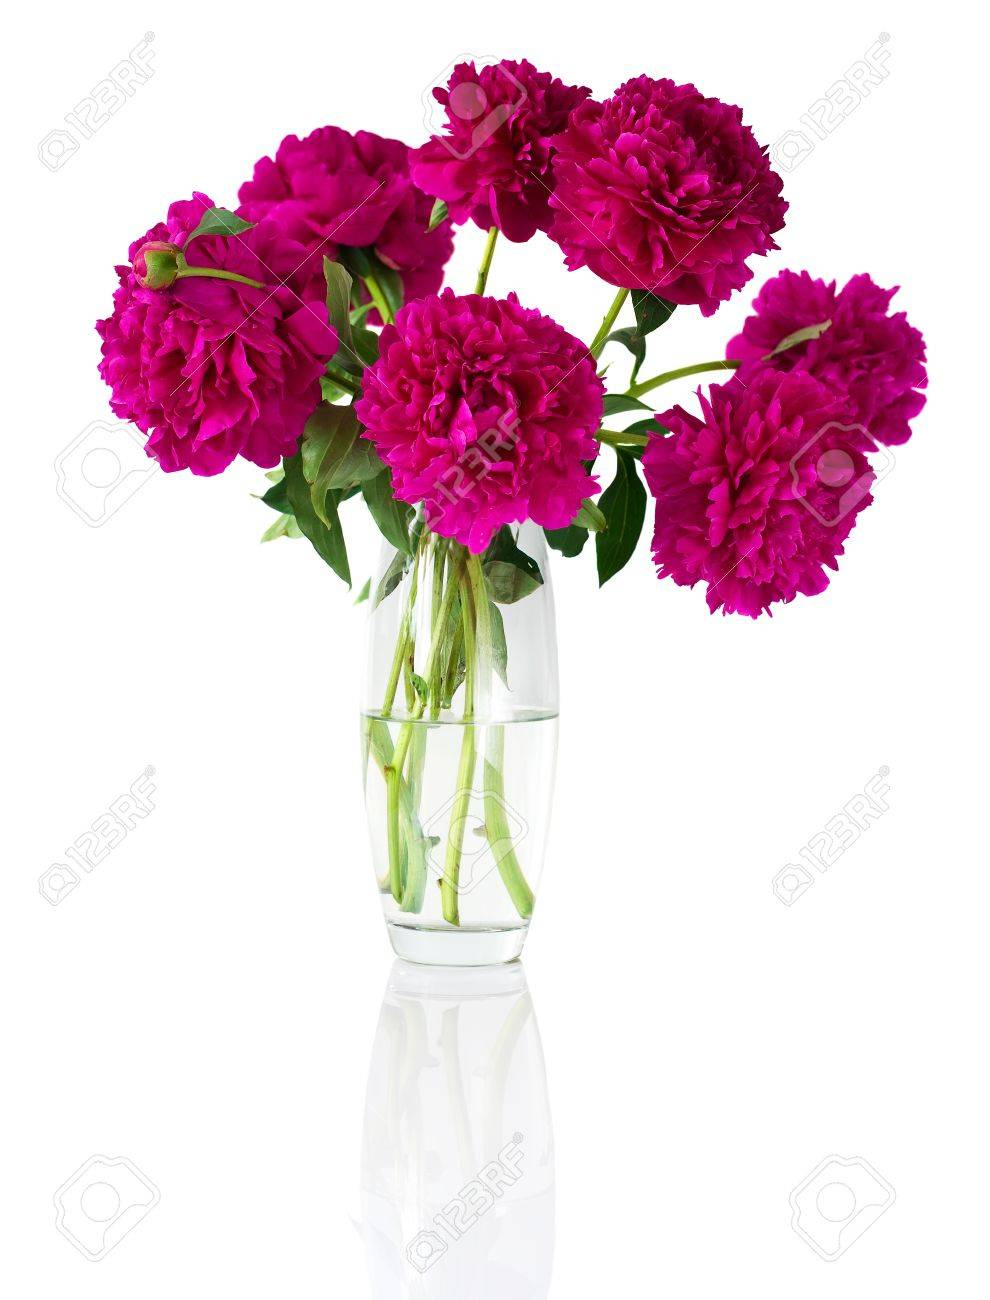 Bouquet of peonies in vase, isolated on white Stock Photo - 11385917